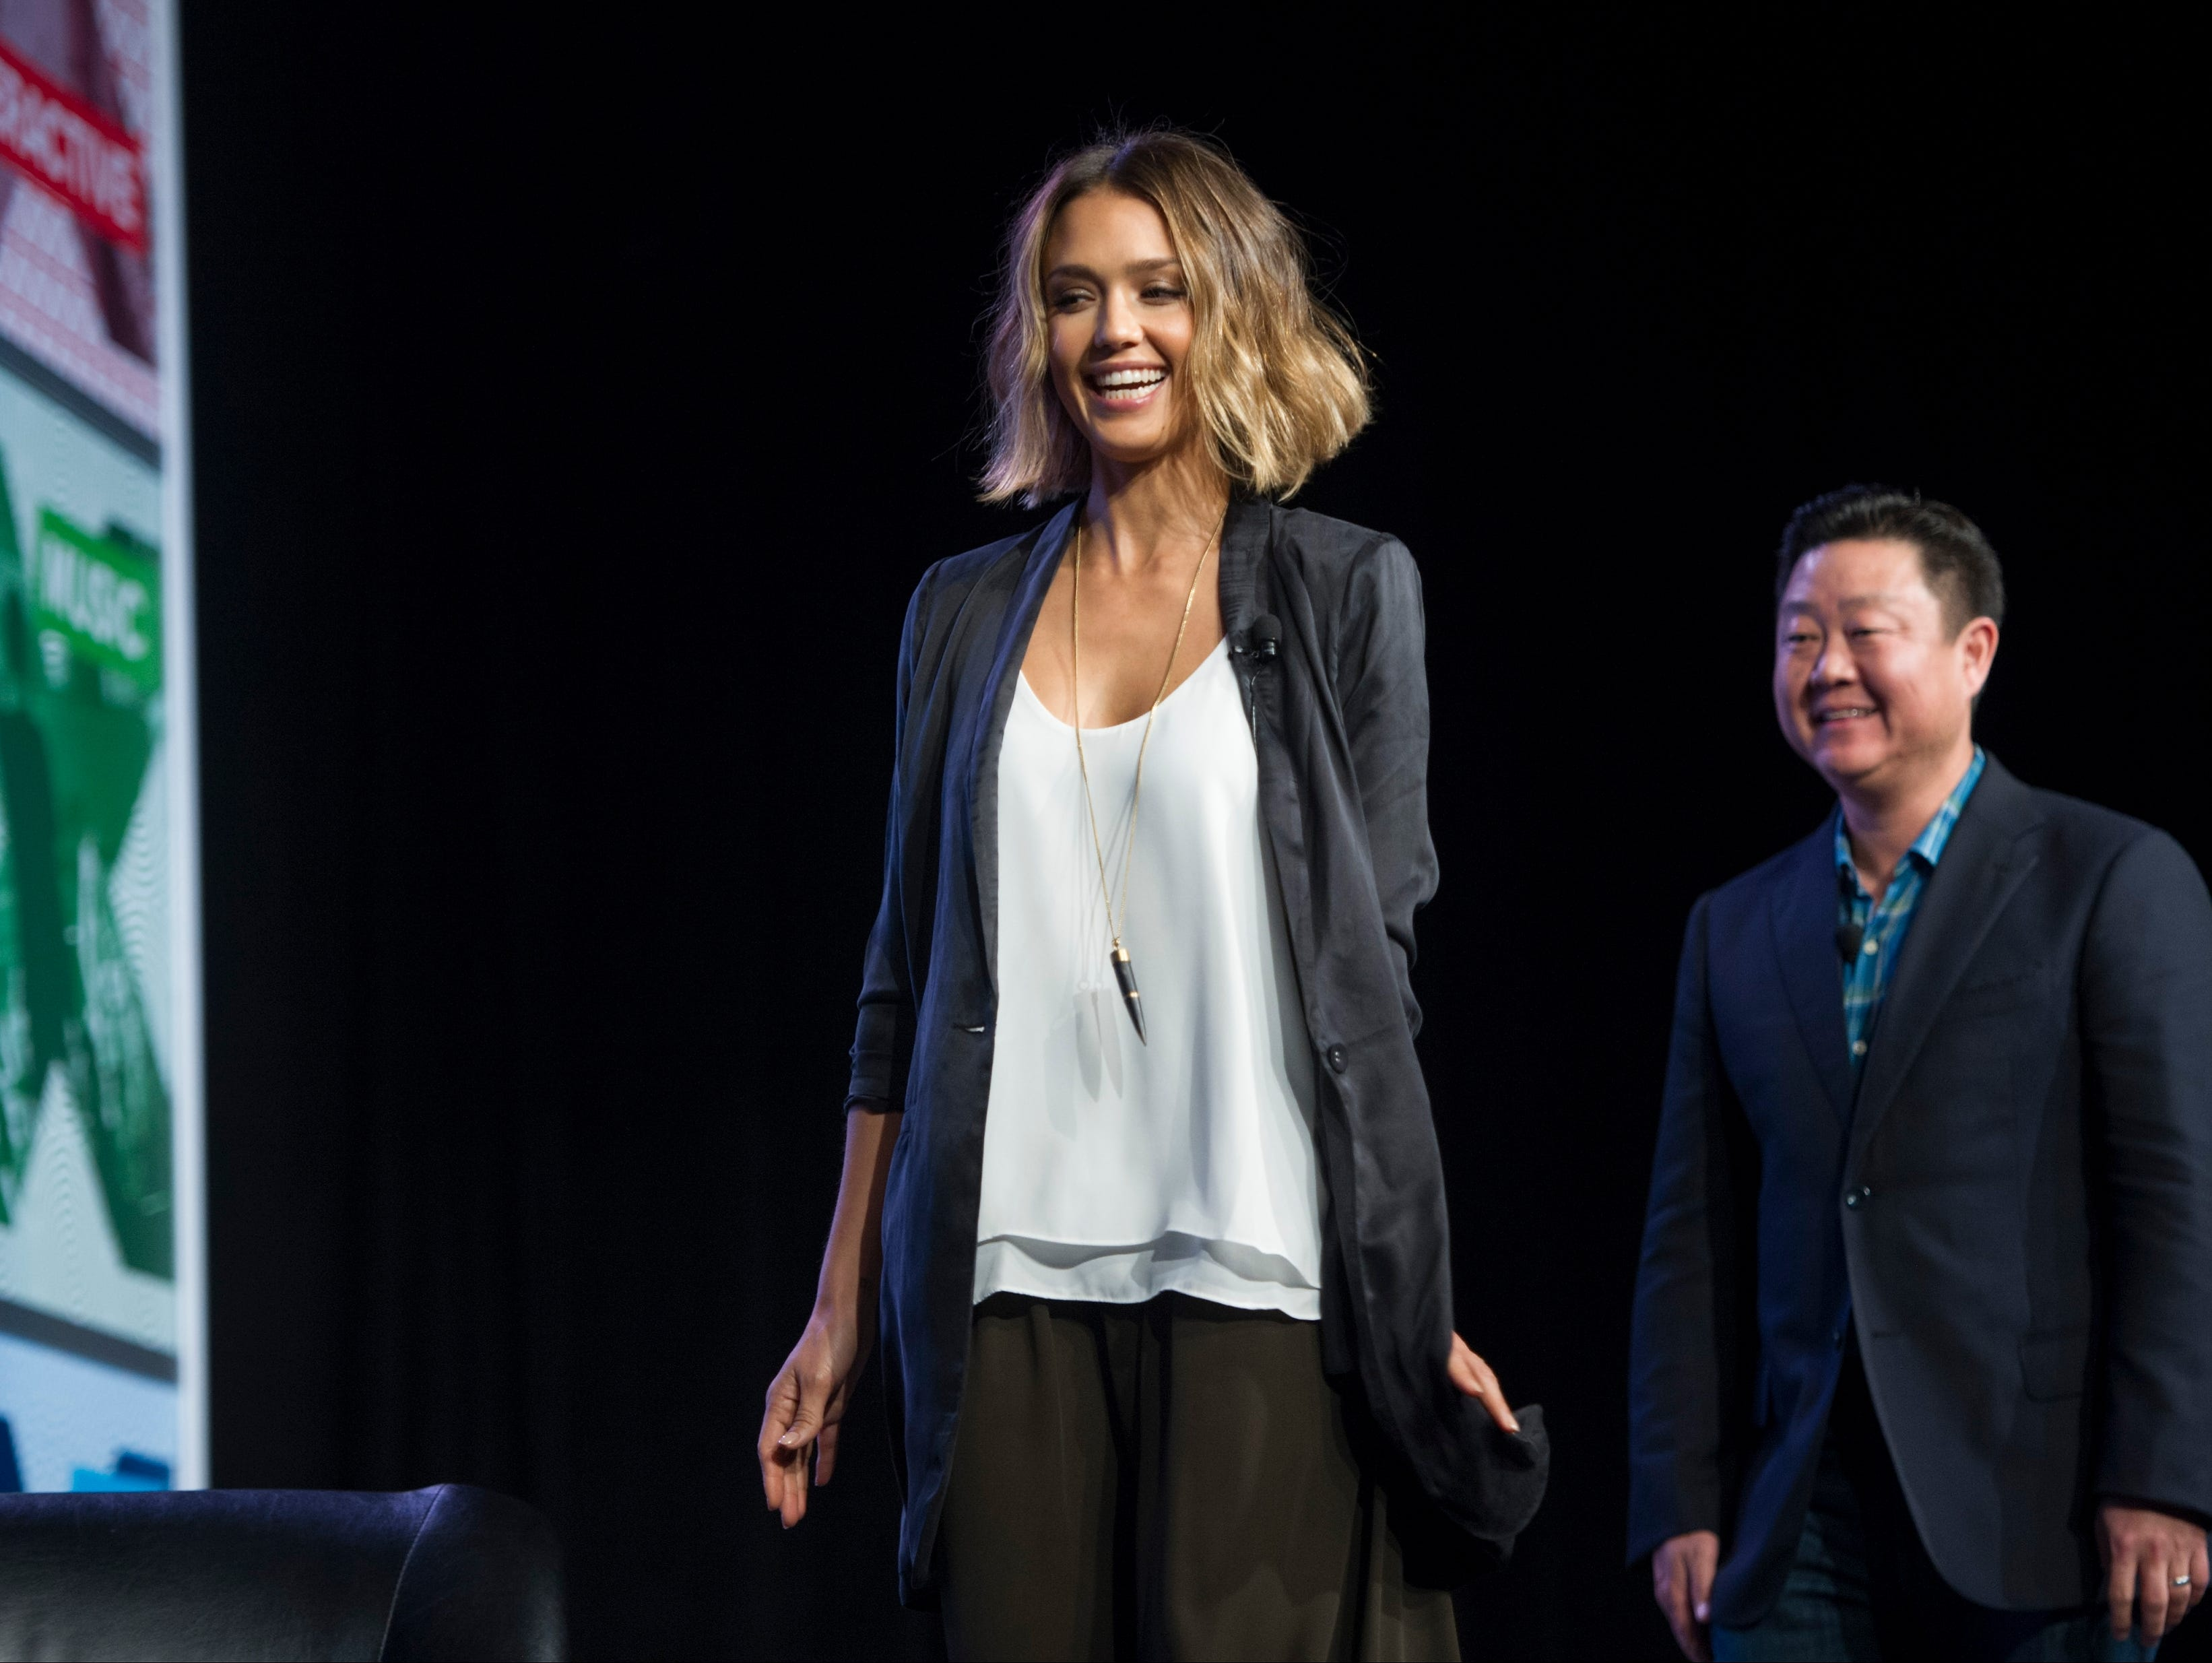 Actress Jessica Alba, founder of The Honest Company, and Brian Lee CEO & Co-Founder, The Honest Company, take the stage during SXSW panel